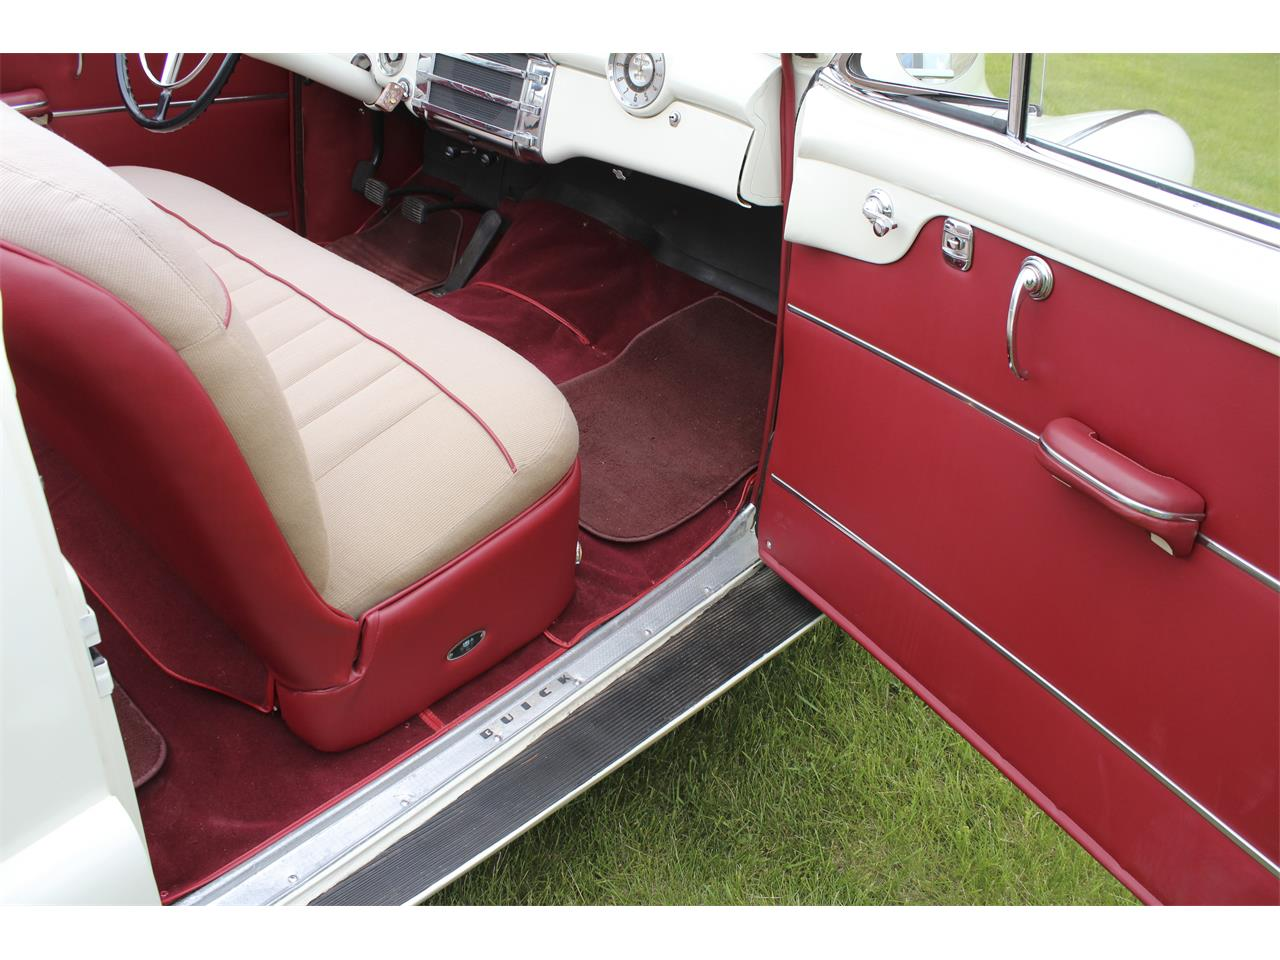 Large Picture of '48 Buick Convertible - $55,000.00 Offered by a Private Seller - QJJ6